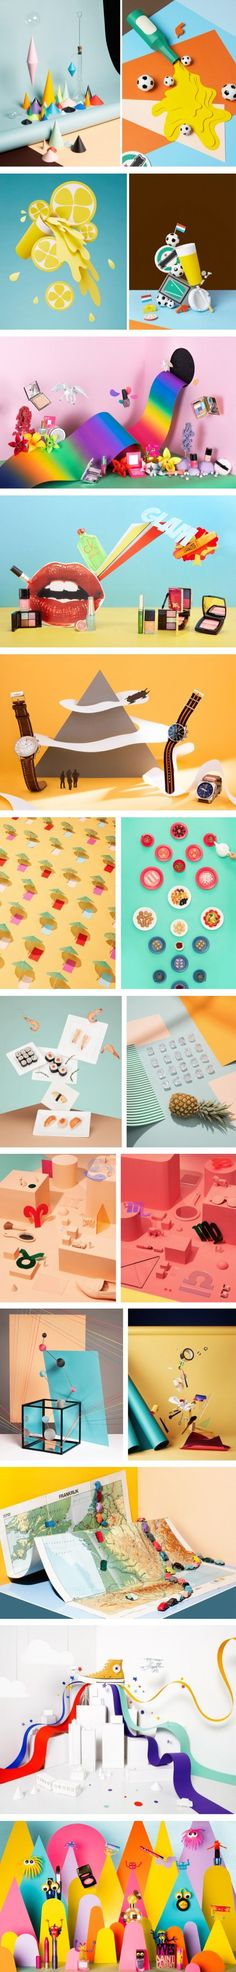 Pin de Flo H. en ▲Set design & Styling | Pinterest